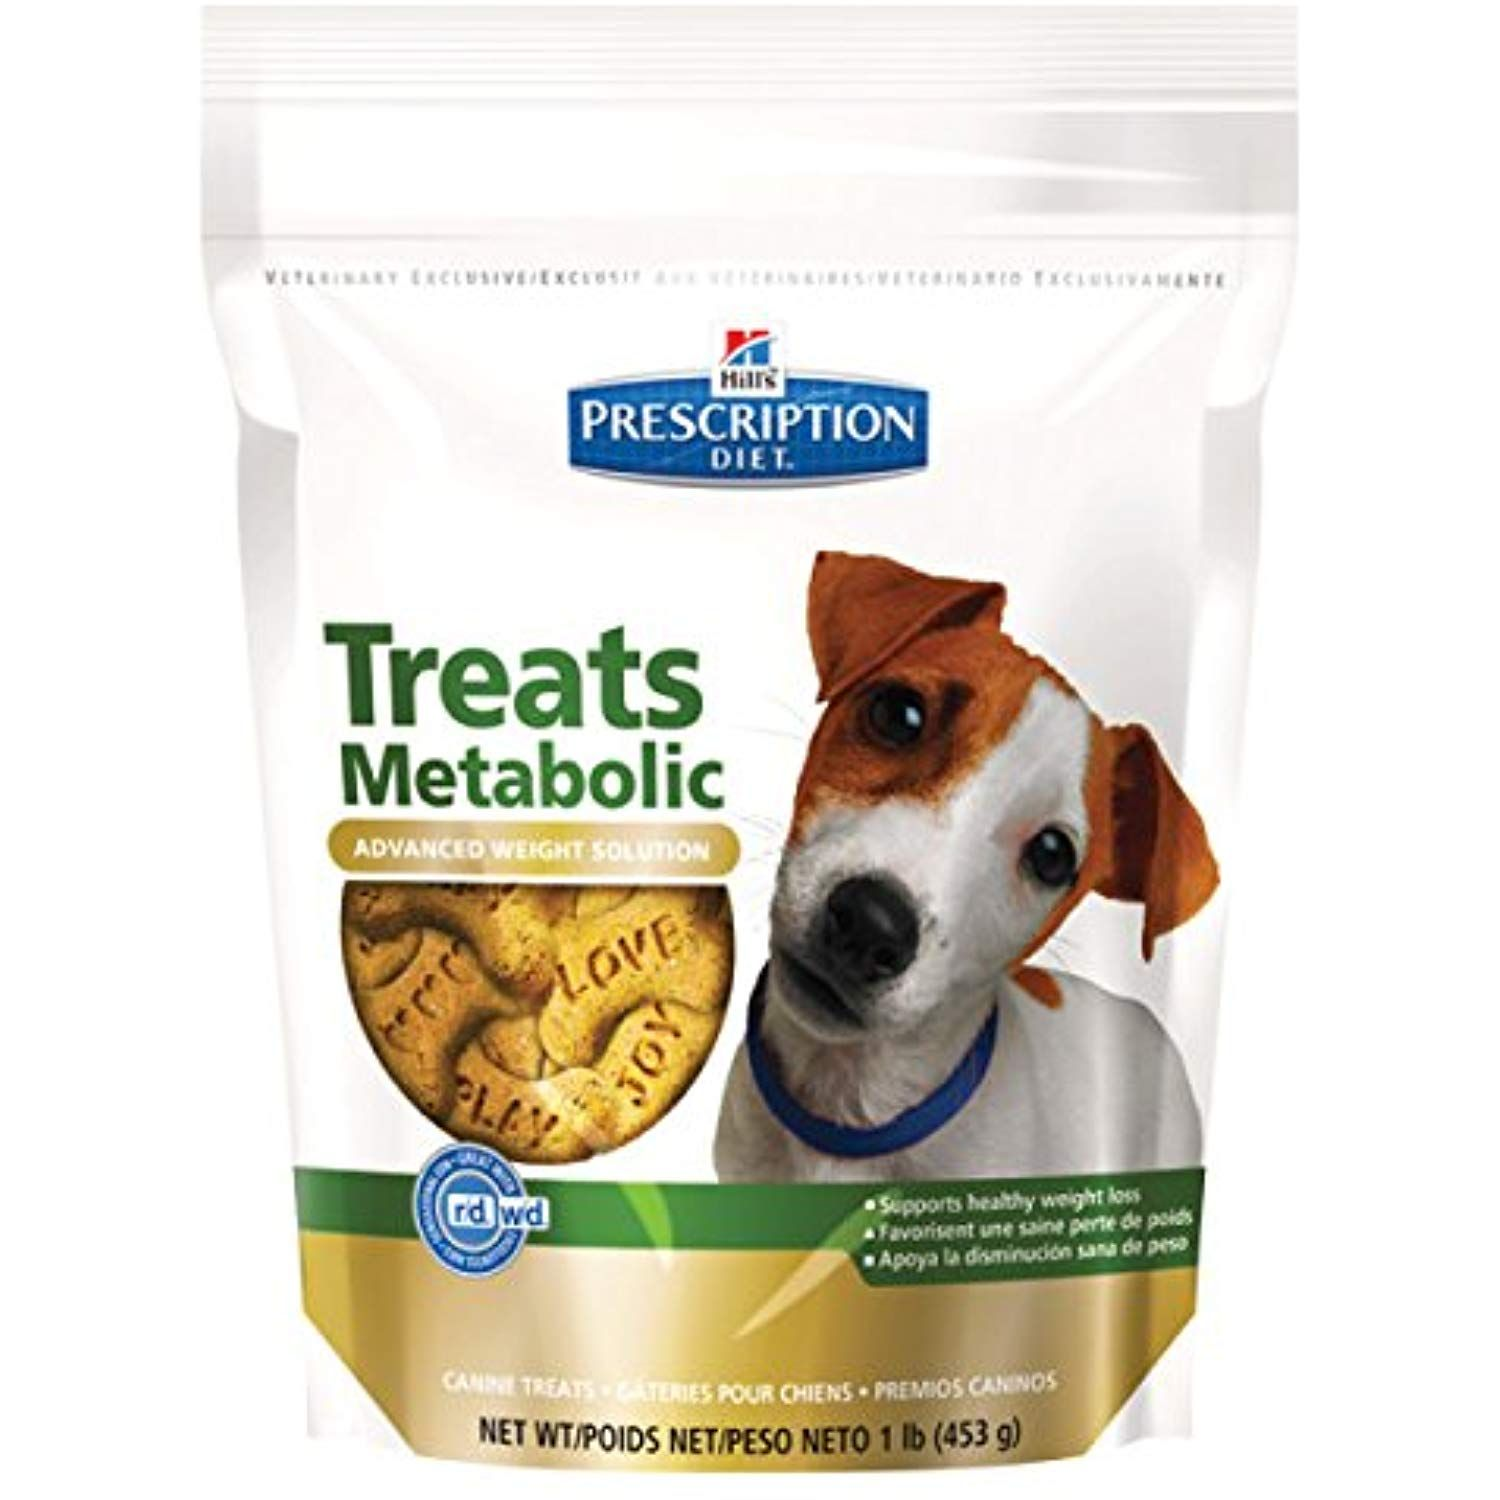 Hill S Prescription Diet Canine Metabolic Advanced Weight Solution Treats Click Image For More Details This Hills Prescription Diet Dog Snacks Food Animals